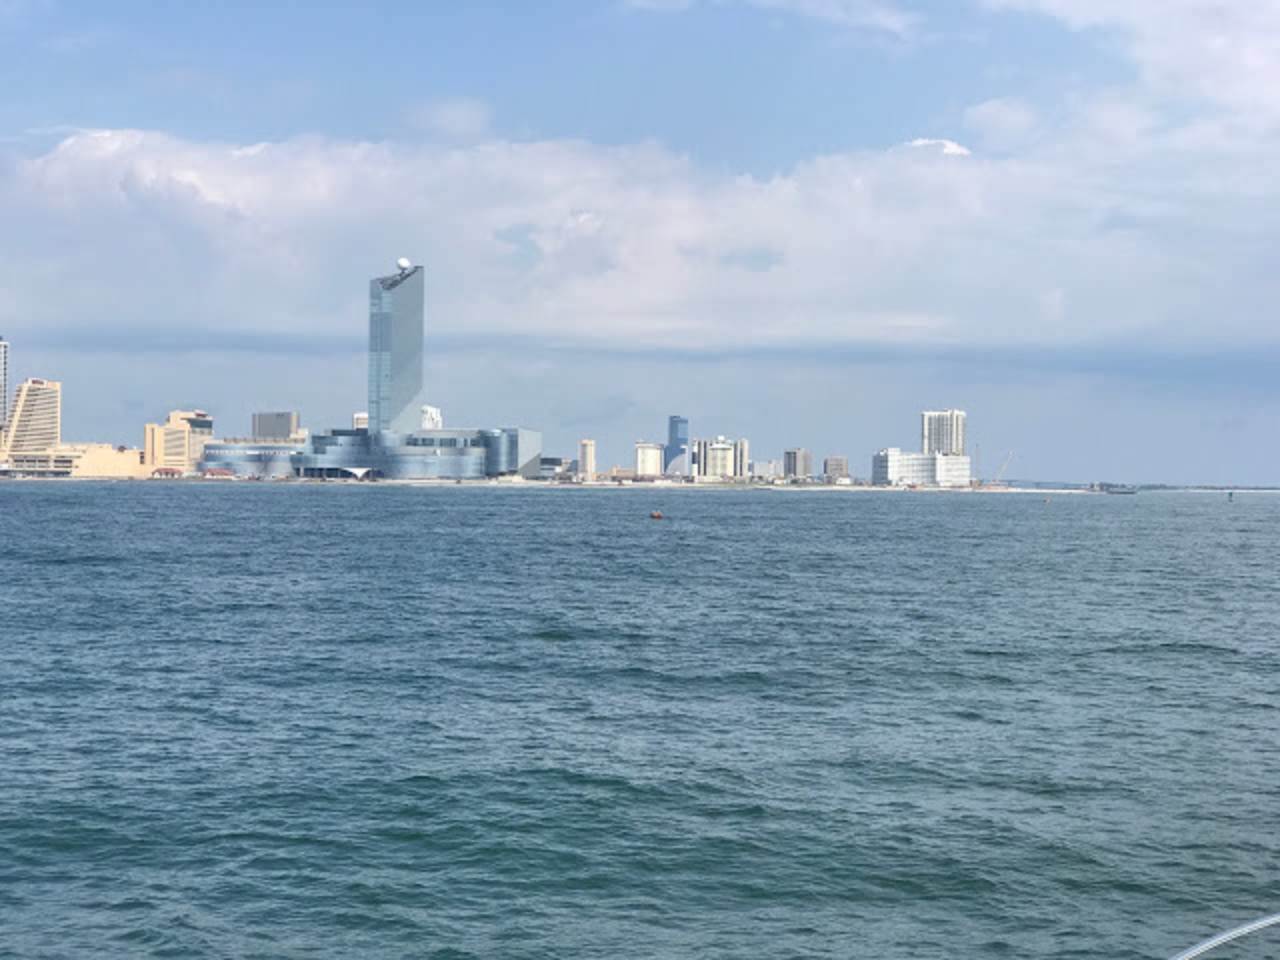 Cape May to Atlantic City to Manhattan: Part 2 2